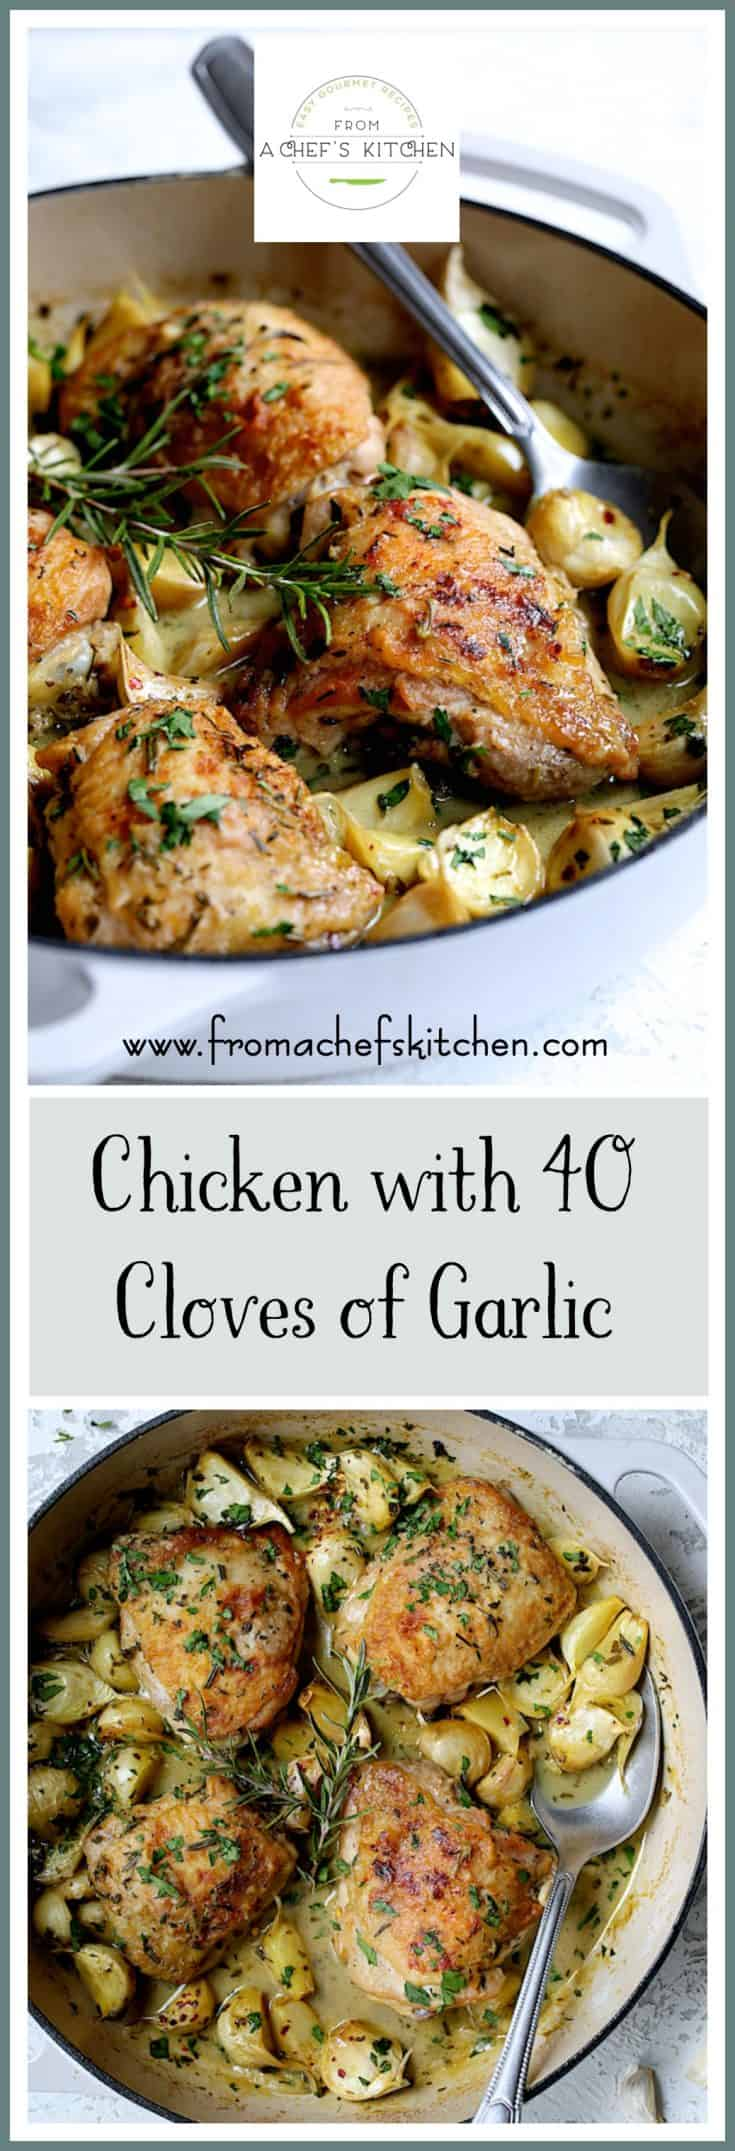 Chicken with 40 Cloves of Garlic is a classic French country dish that's perfect for a weeknight dinner or your most elegant dinner party. Paired with budget-friendly chicken thighs, all that garlic mellows into buttery goodness for a dish you'll fall in love with! #chicken #chickenrecipes #Frenchrecipes #garlic #easychickenrecipes